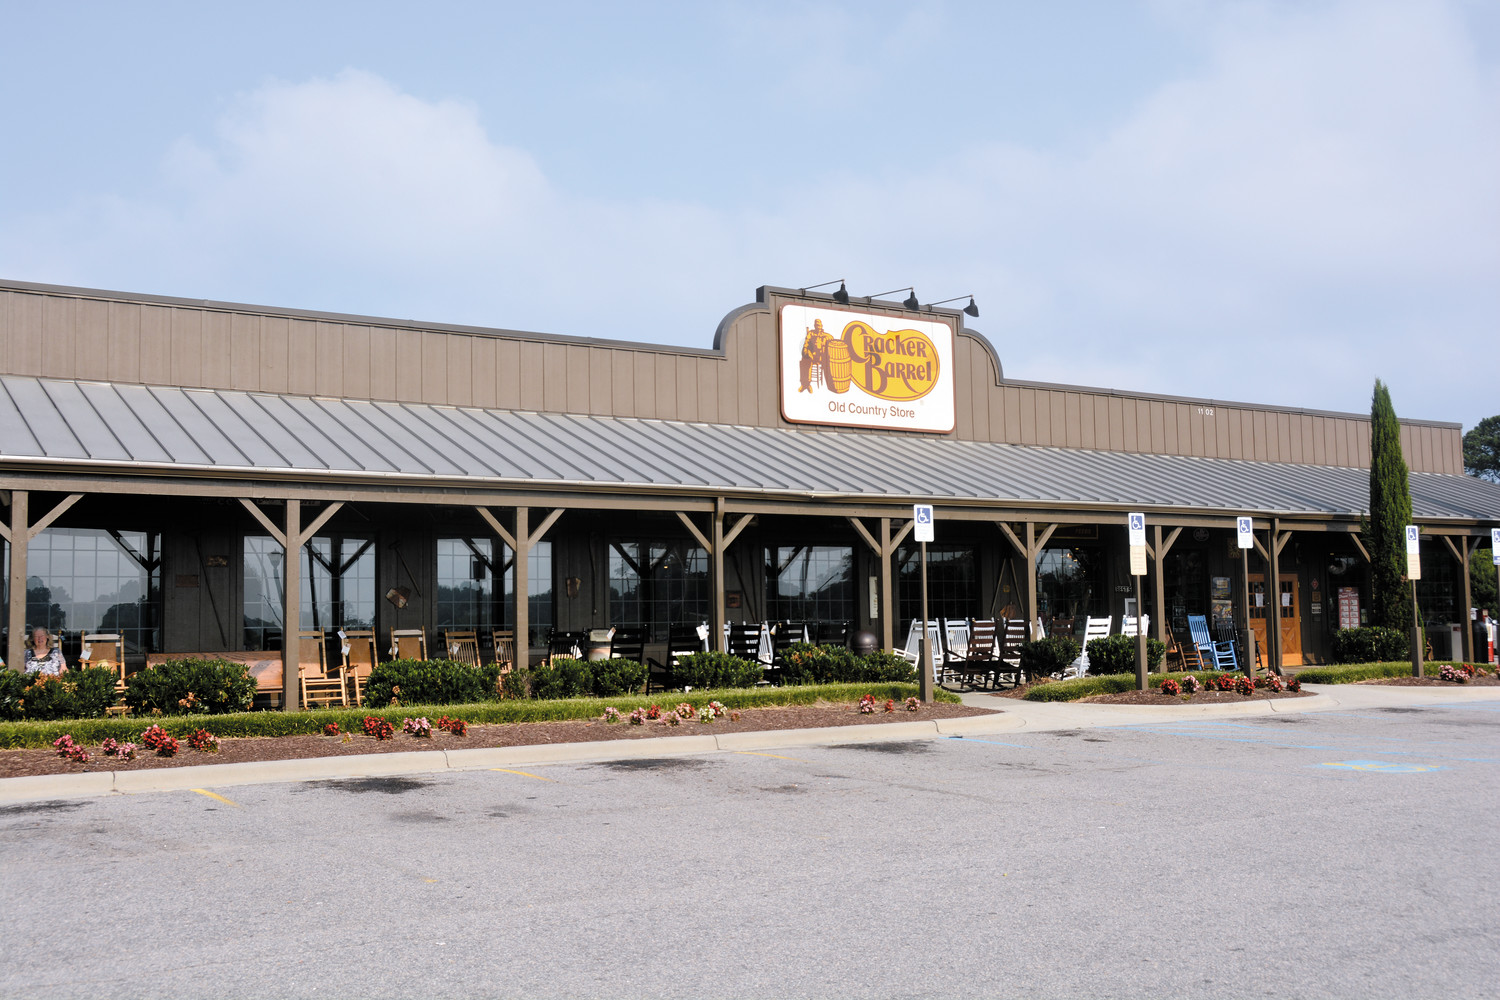 The Cracker Barrel store in Dunn, shown here, was closed Wednesday night and Thursday after a small fire in the store. Management in the store confirmed the fire and referred questions to the corporate offices..According to Dunn Emergency Services Assistant Chief Scott Phillips, the fire started in the kitchen as a small grease fire around 6:40 p.m. forcing the restaurant to be evacuated. Estimates of damage by the Dunn Emergency Services were  listed as approximately $15,000. Because a fire extinguisher was discharged, the Harnett County Health Department must re-inspect the location prior to its re-opening. No injuries were reported and fire units left the restaurant around 8:30 p.m.